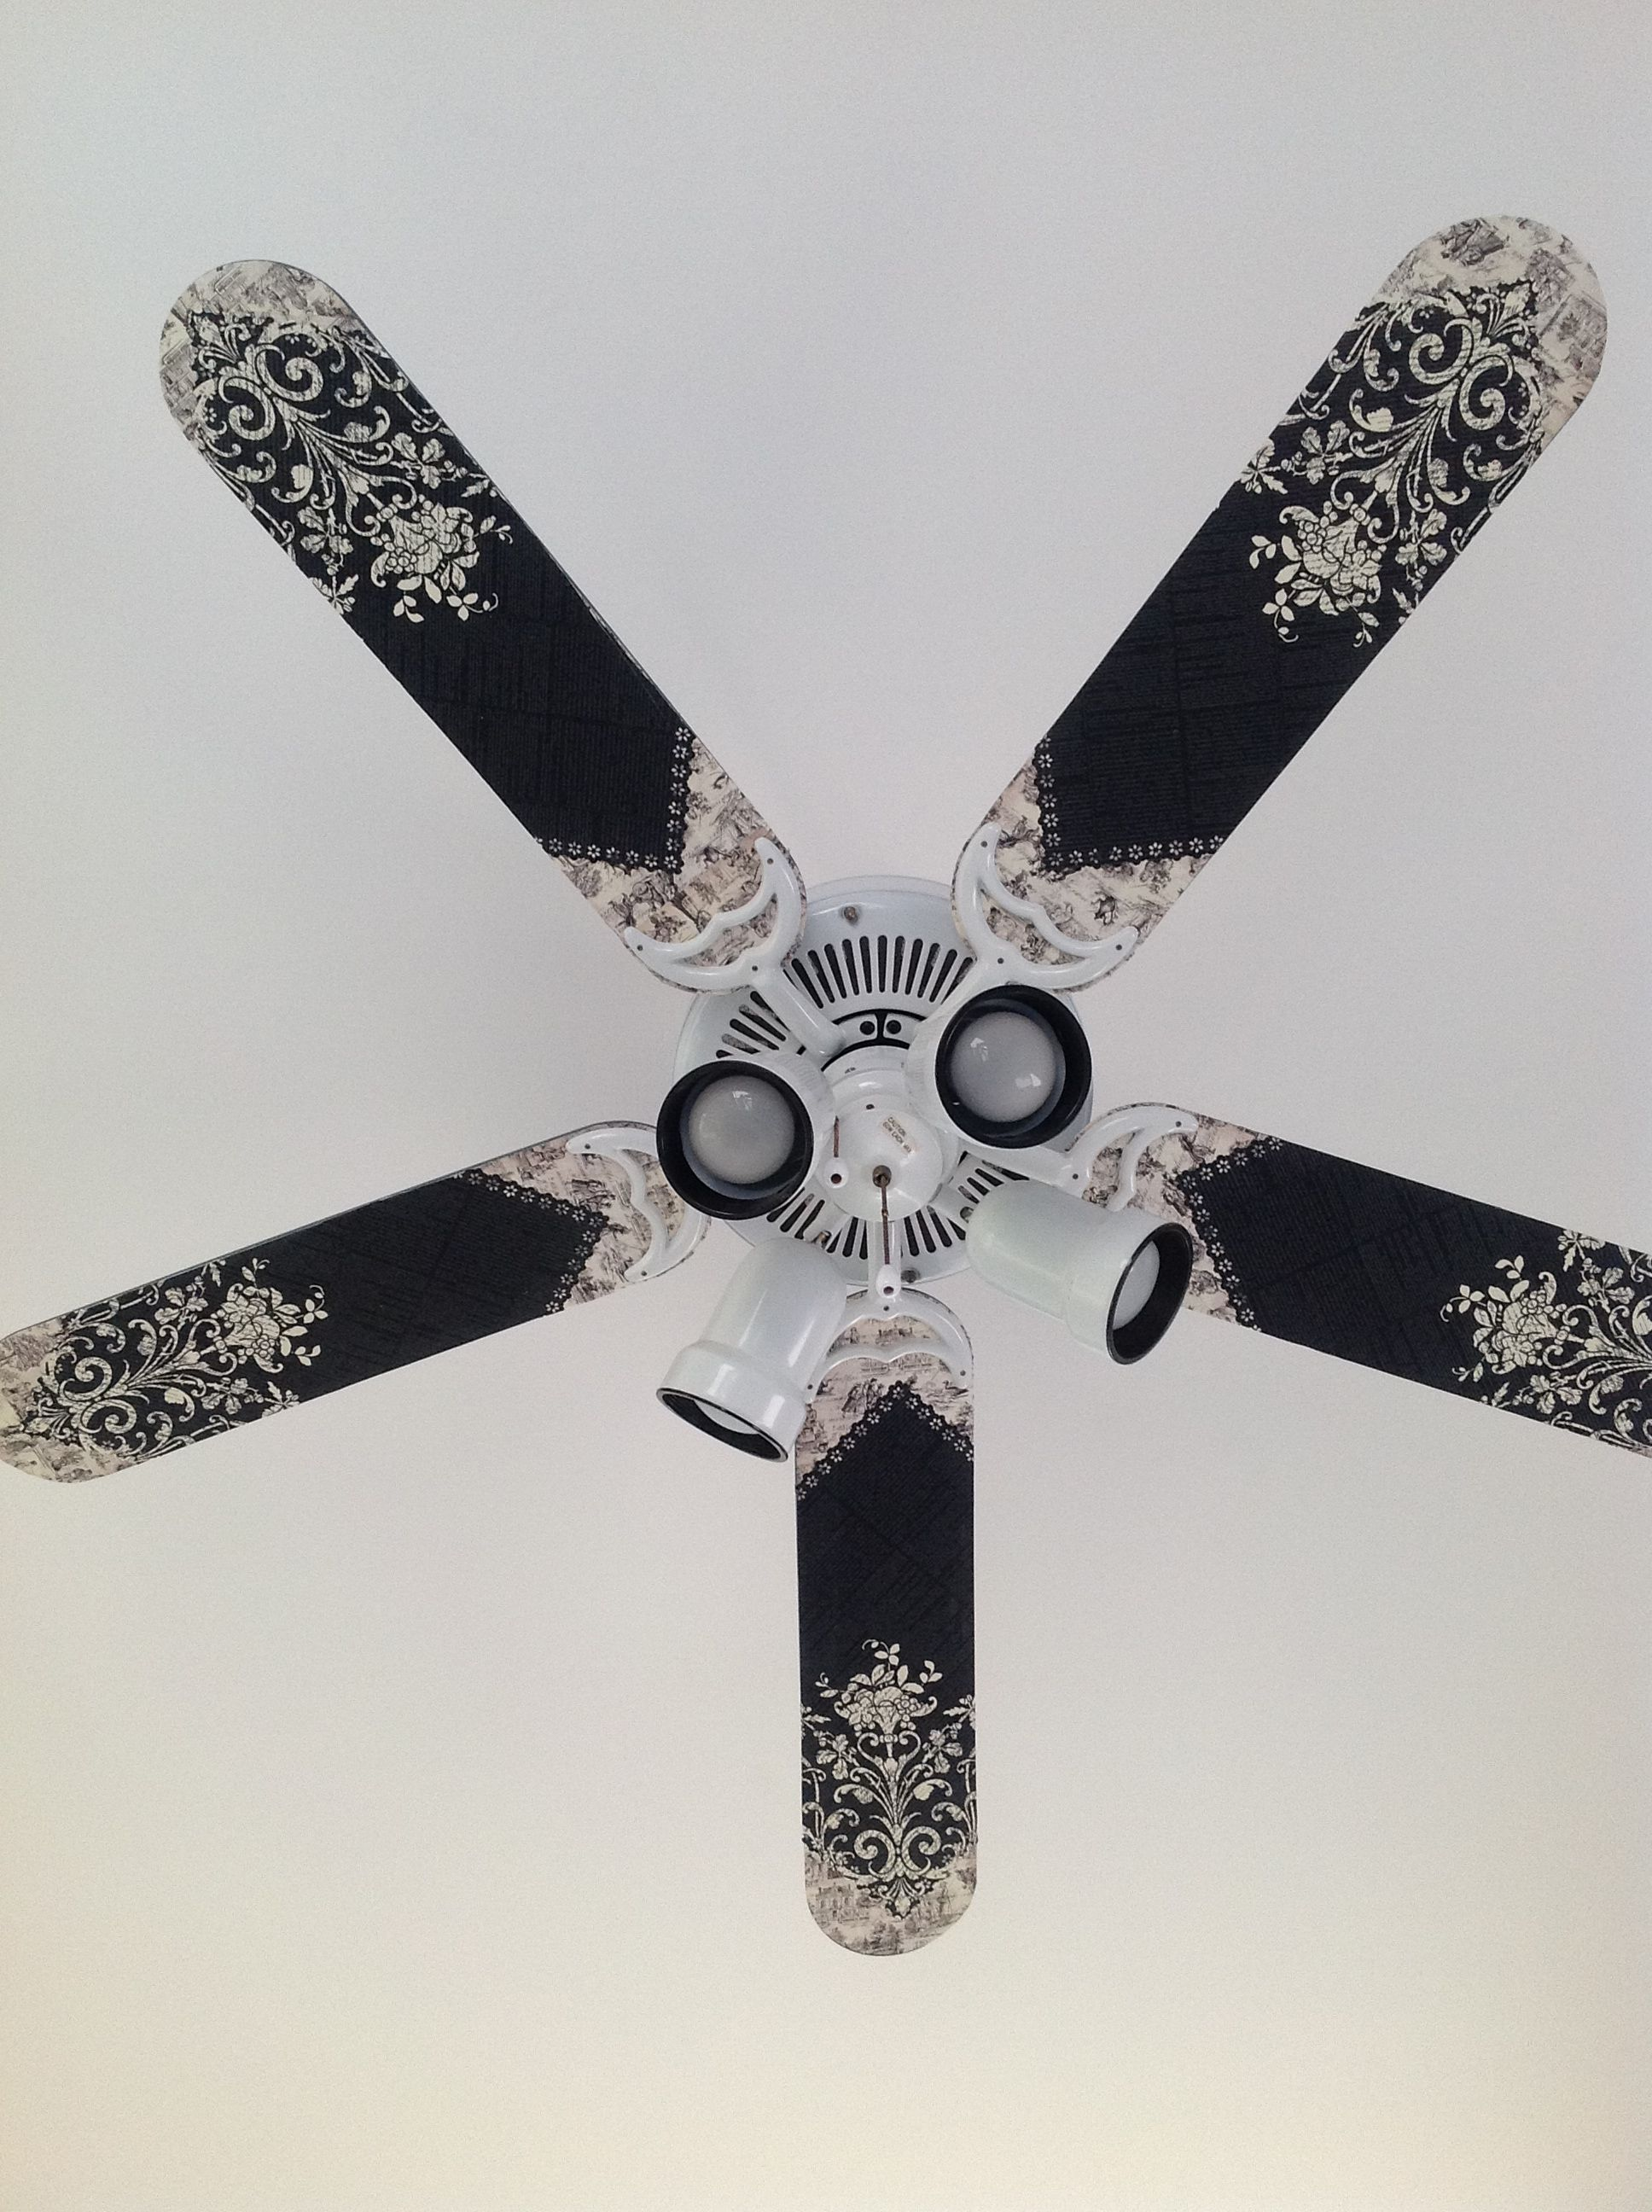 My Take On Modge Podge Ceiling Fan Redo Thank You For The